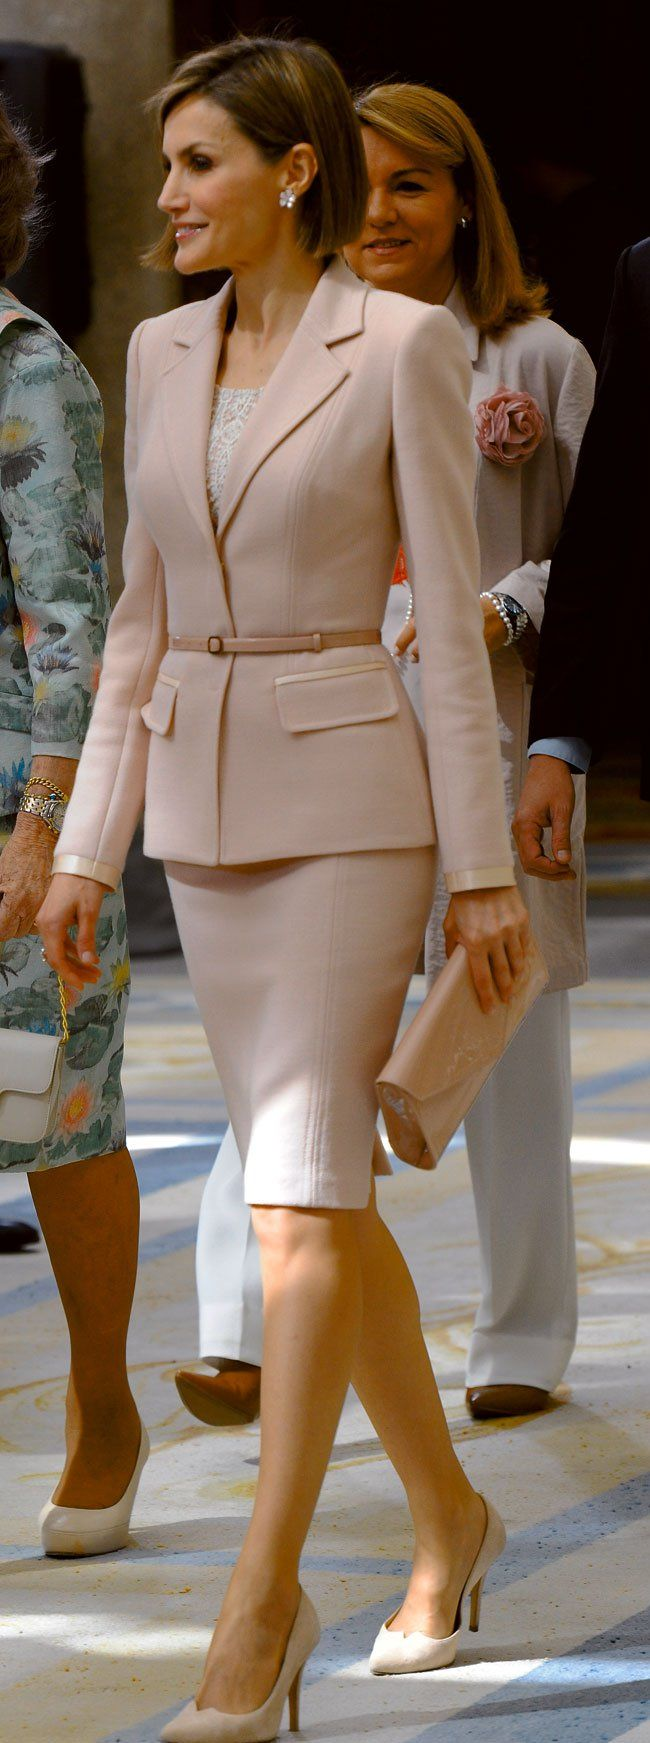 Queen Letizia - Pale Pink Suit                                                                                                                                                      Más